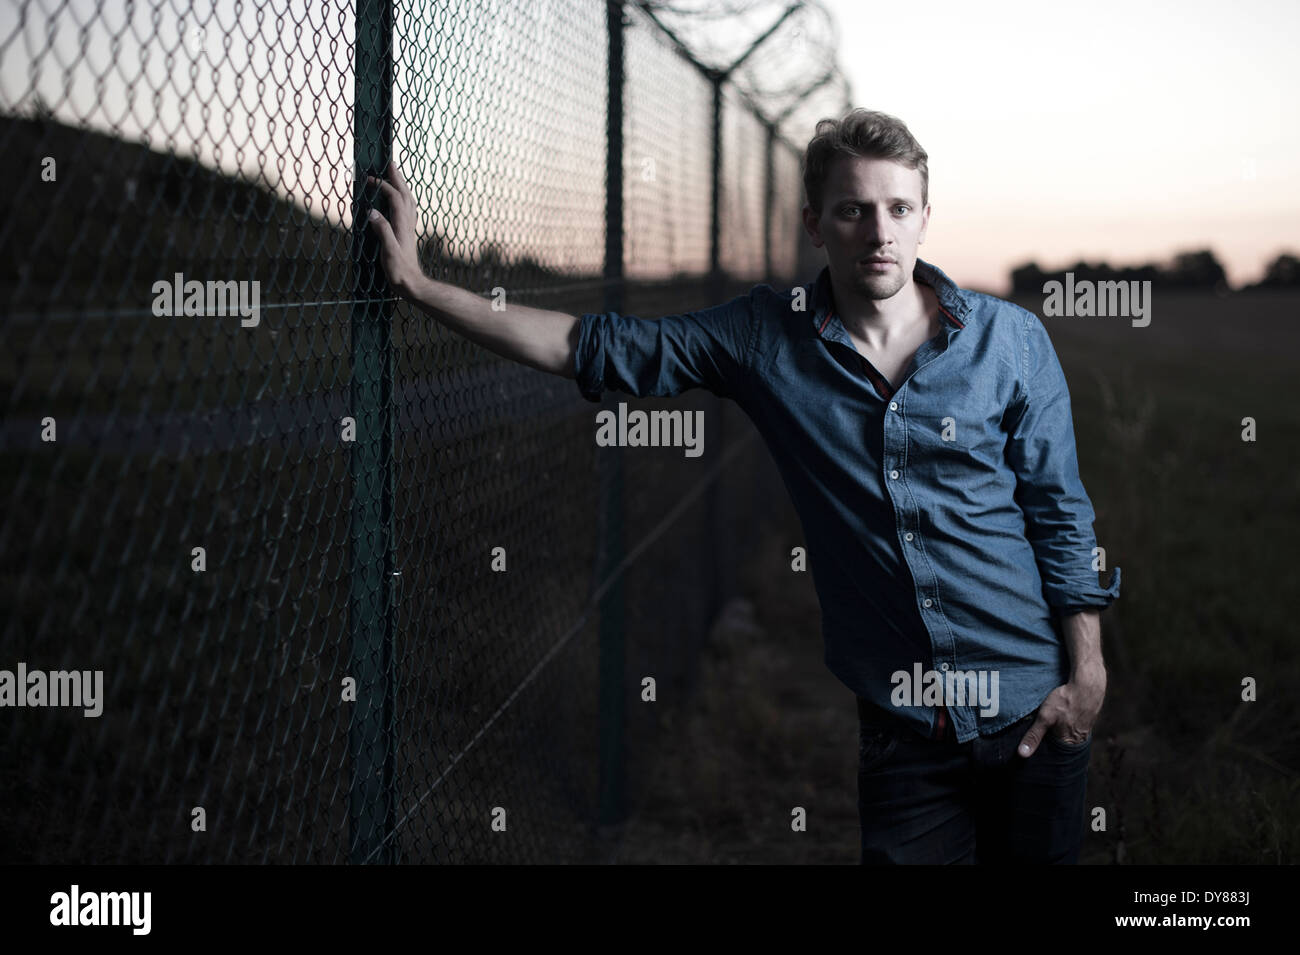 Young man at a chain link fence - Stock Image